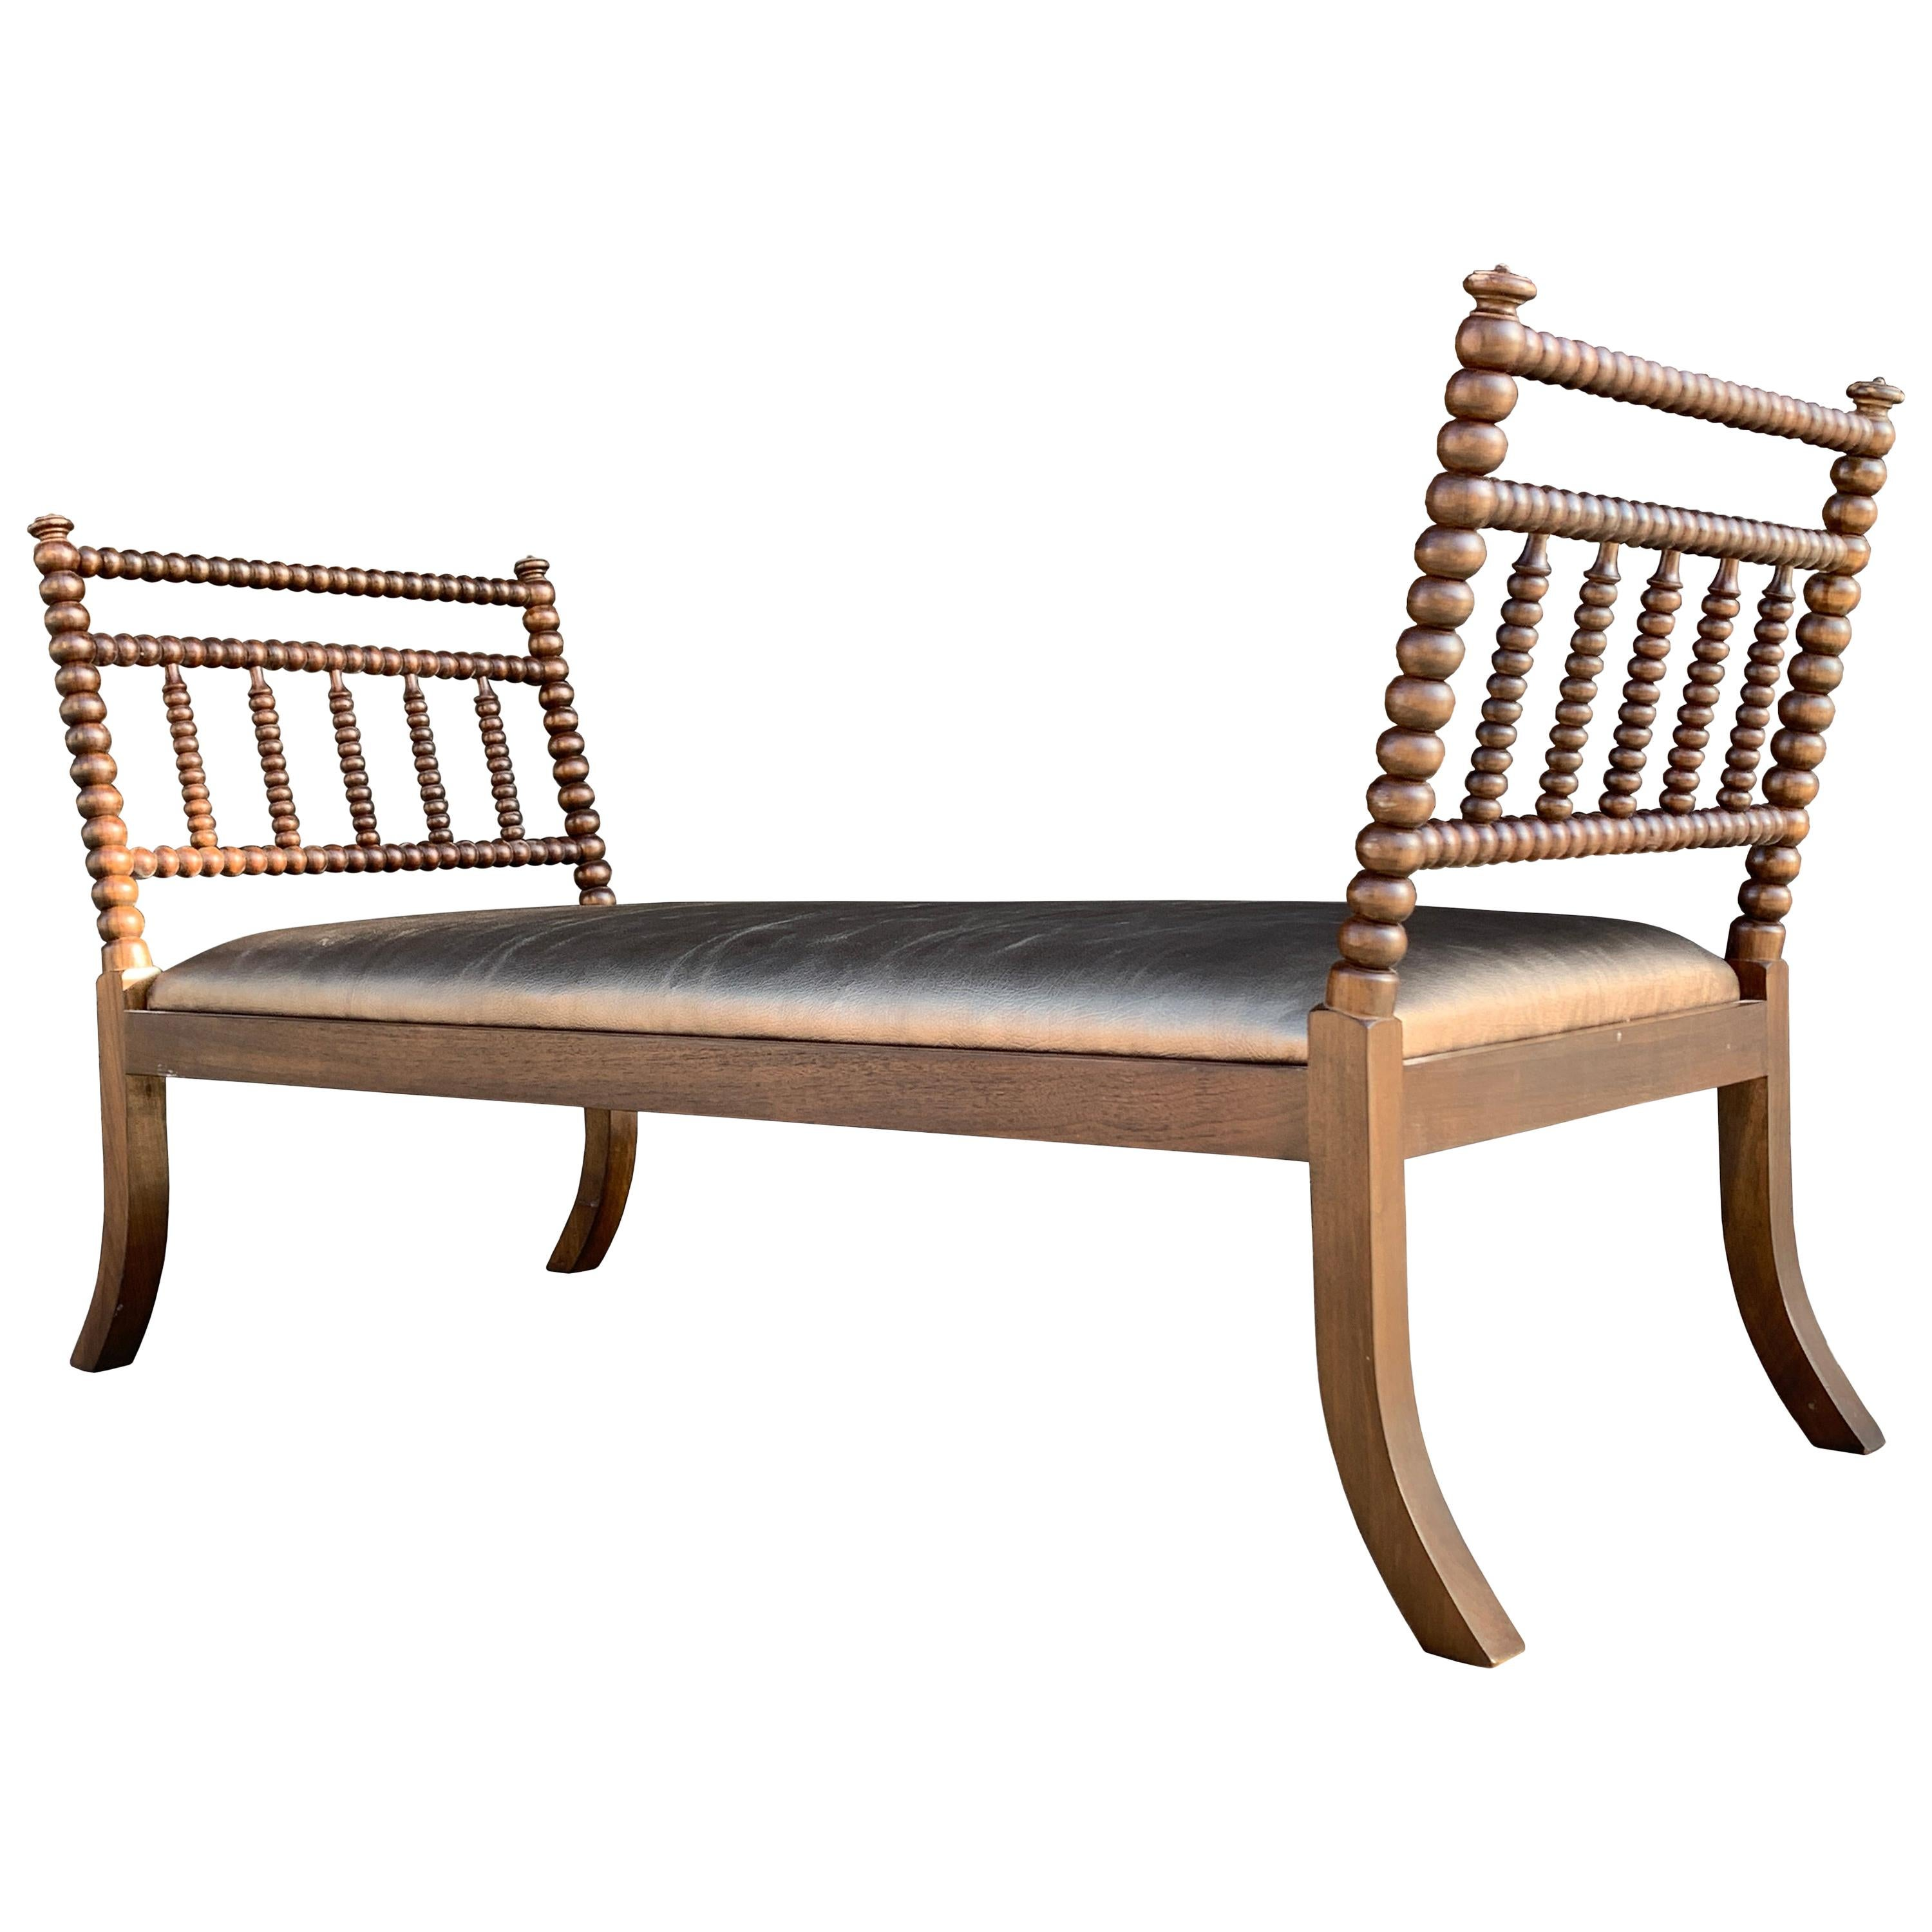 English Daybed with Turned Wood Frame